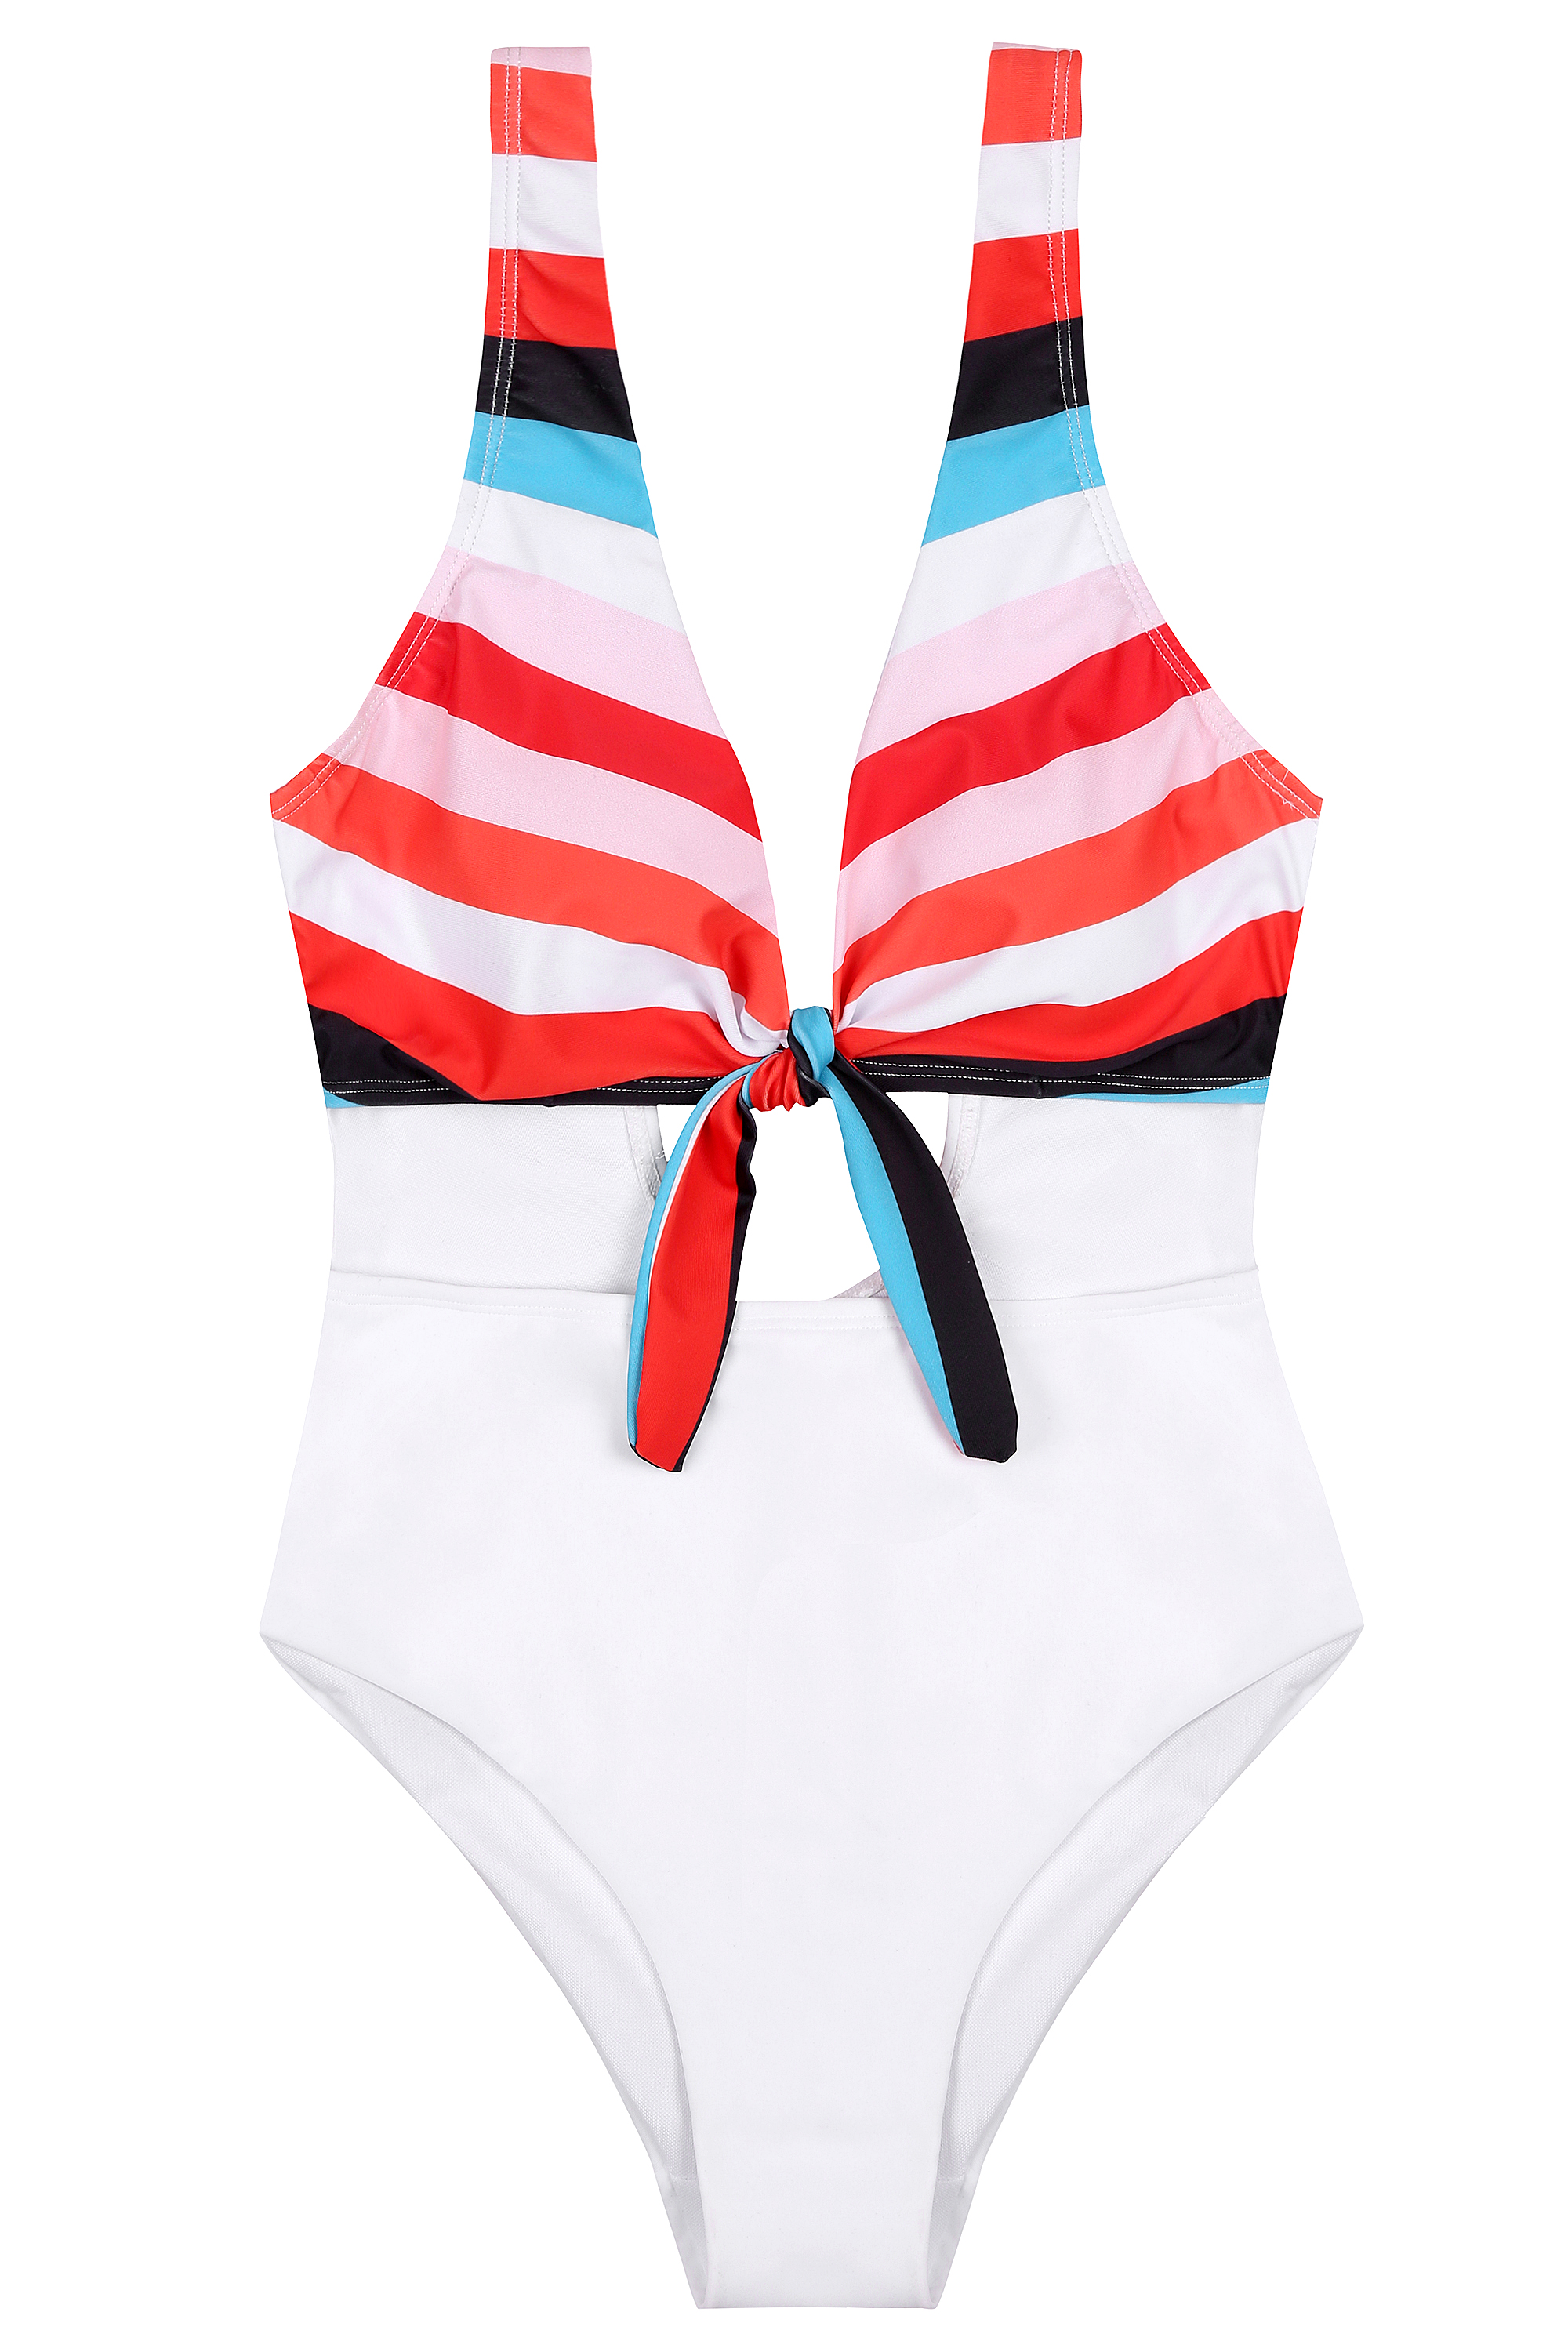 Knotted One-Piece Sexy Swimsuit With Long Legs Woman Swimsuit